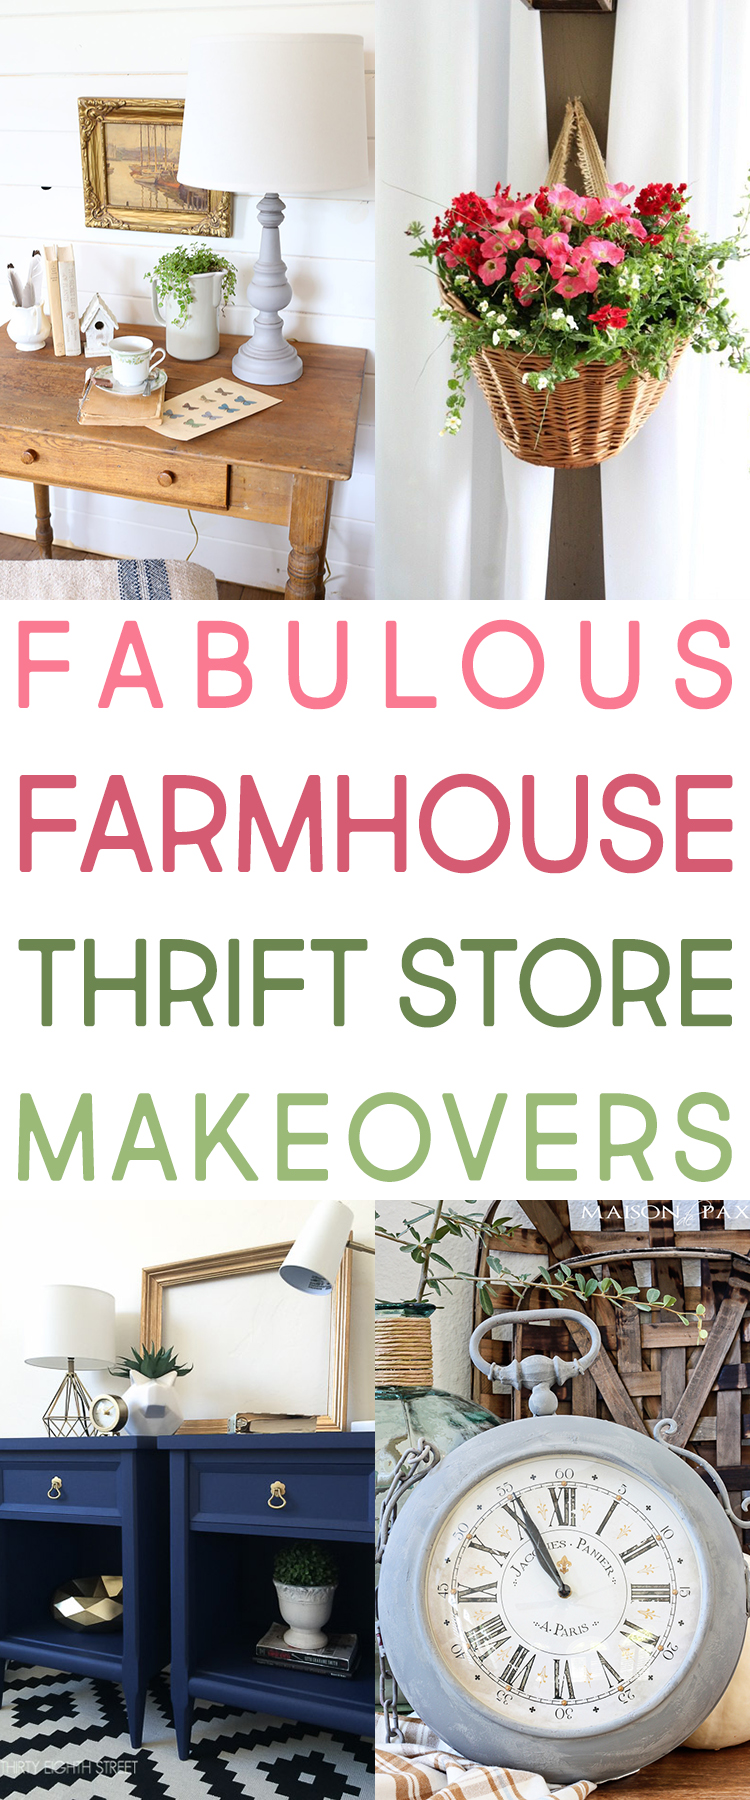 Fabulous Farmhouse Thrift Store Makeovers